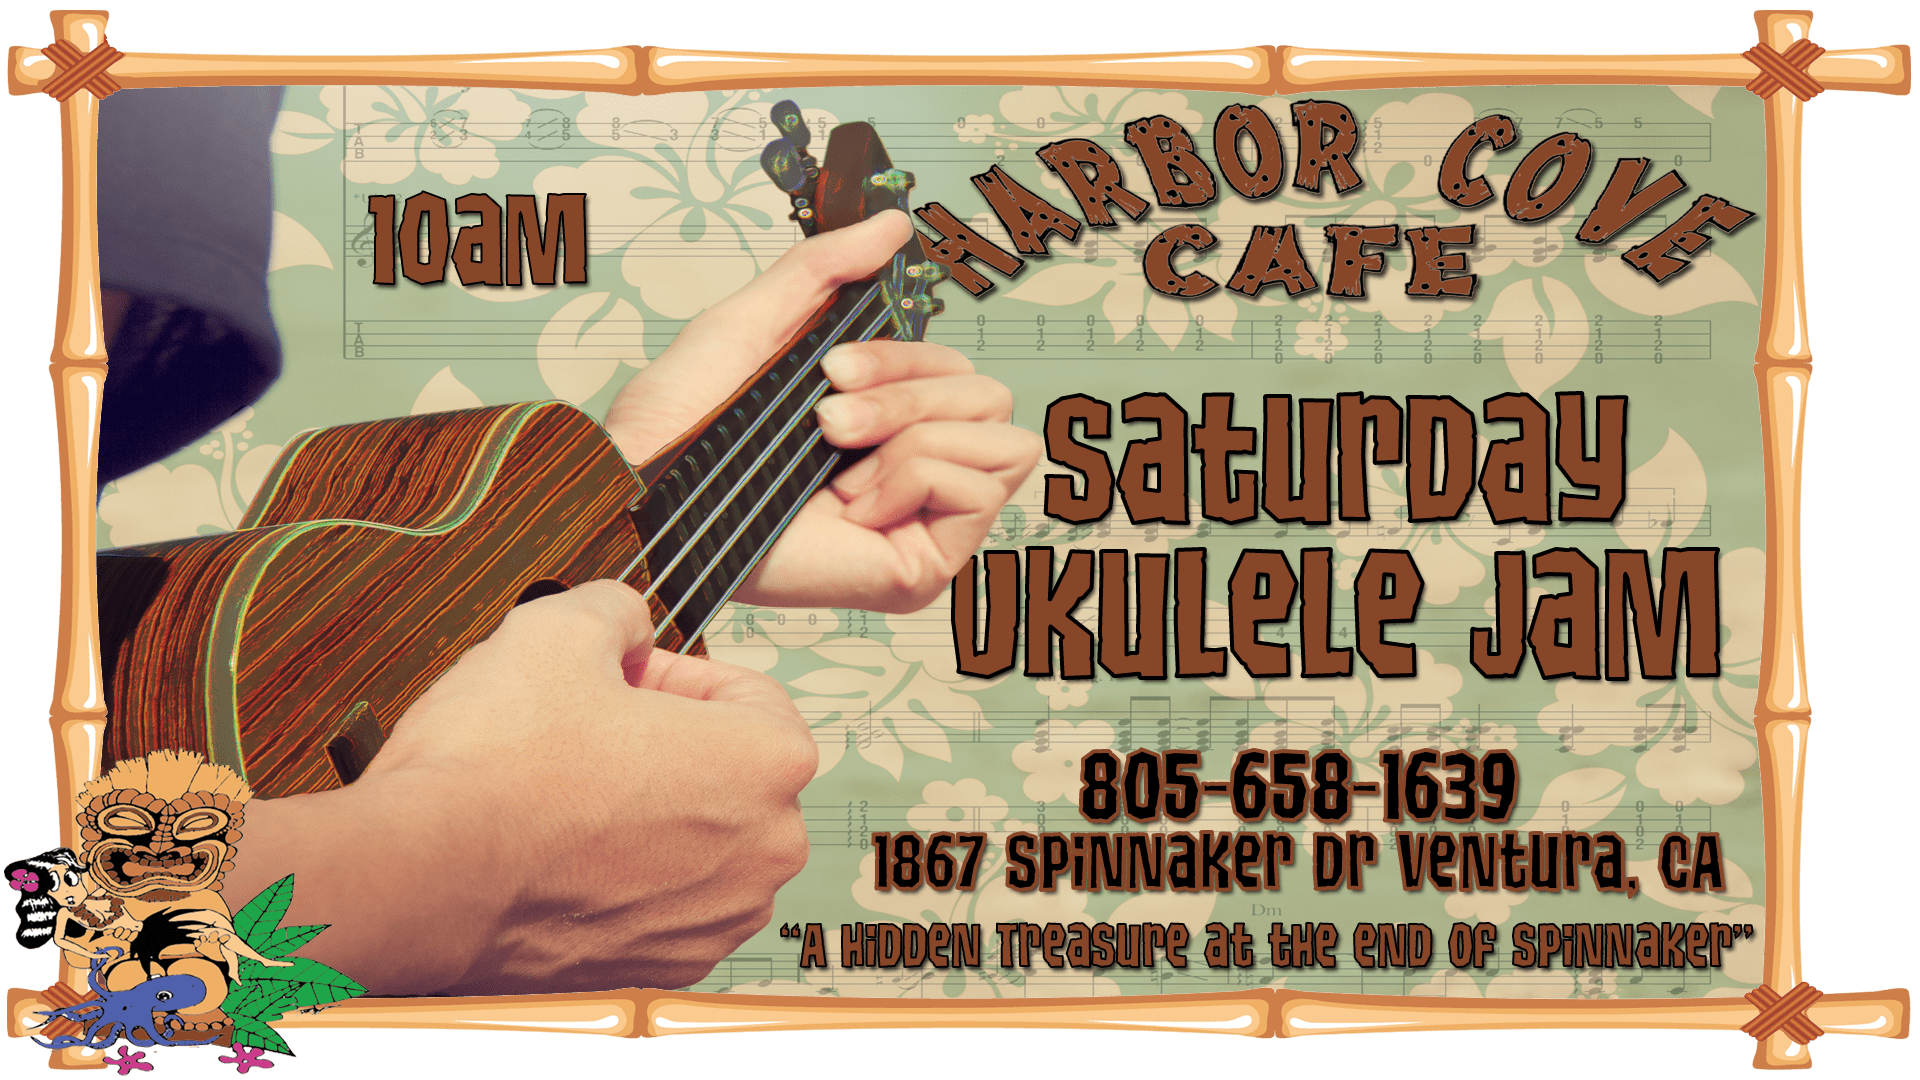 Saturday Night Ukulele Jams at Harbor Cove Cafe